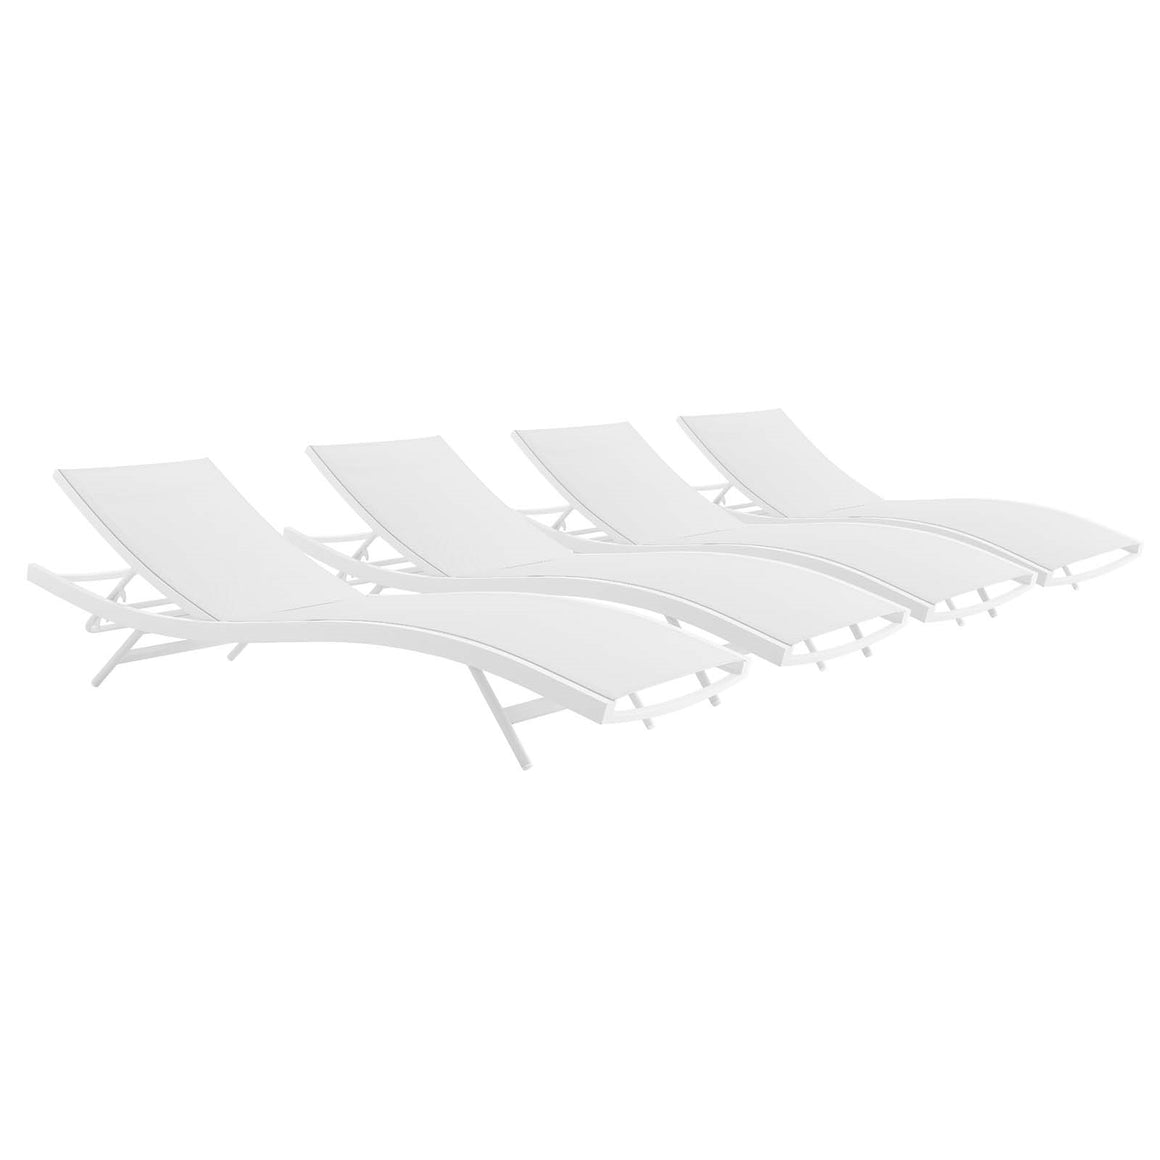 Glimpse Outdoor Patio Mesh Chaise Lounge Chair / Set of 4 - taylor ray decor